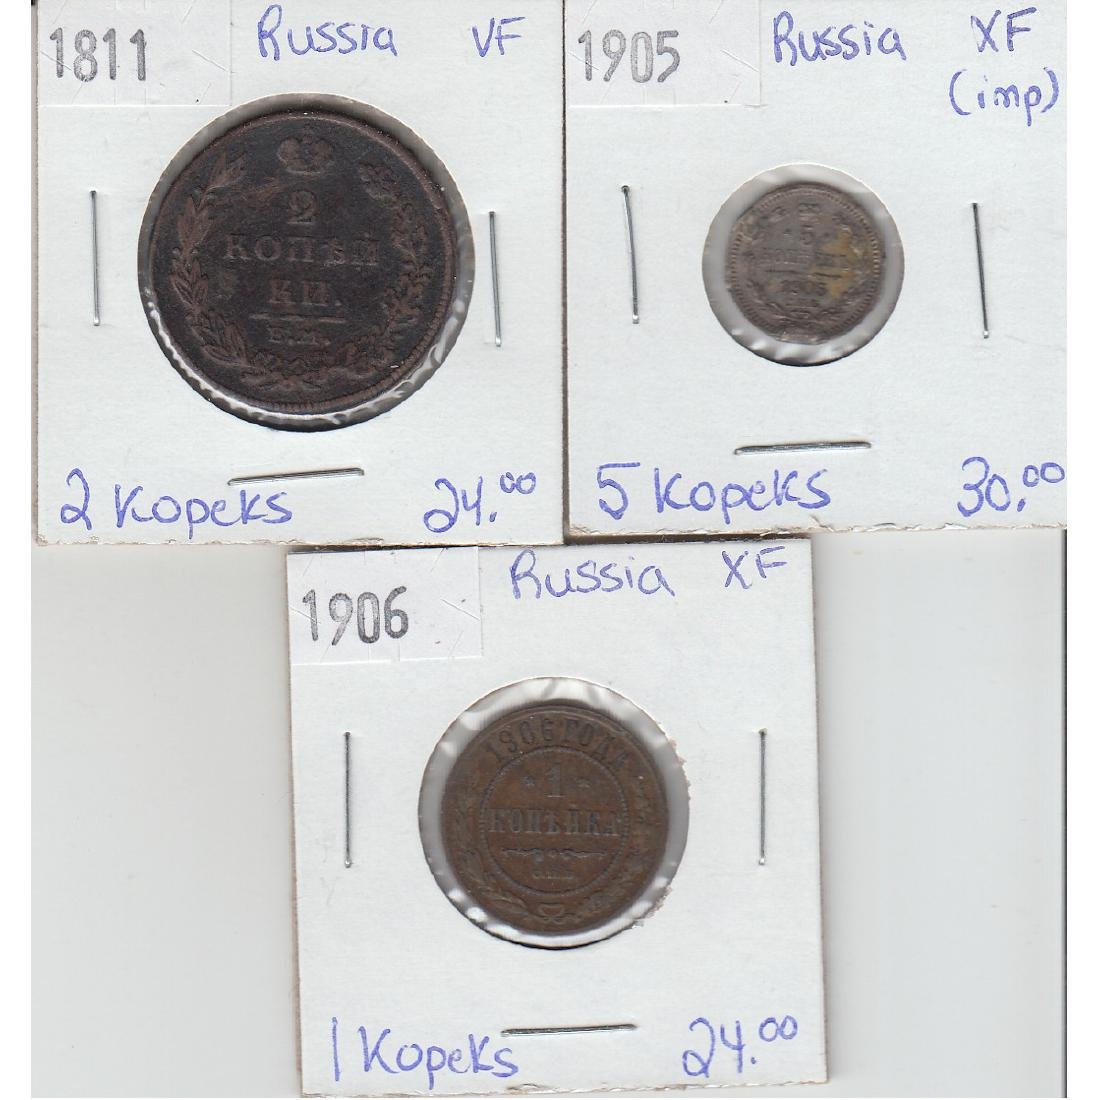 Lot of 3x Russian Coinage Dated 1811-1906 in VF or EF.